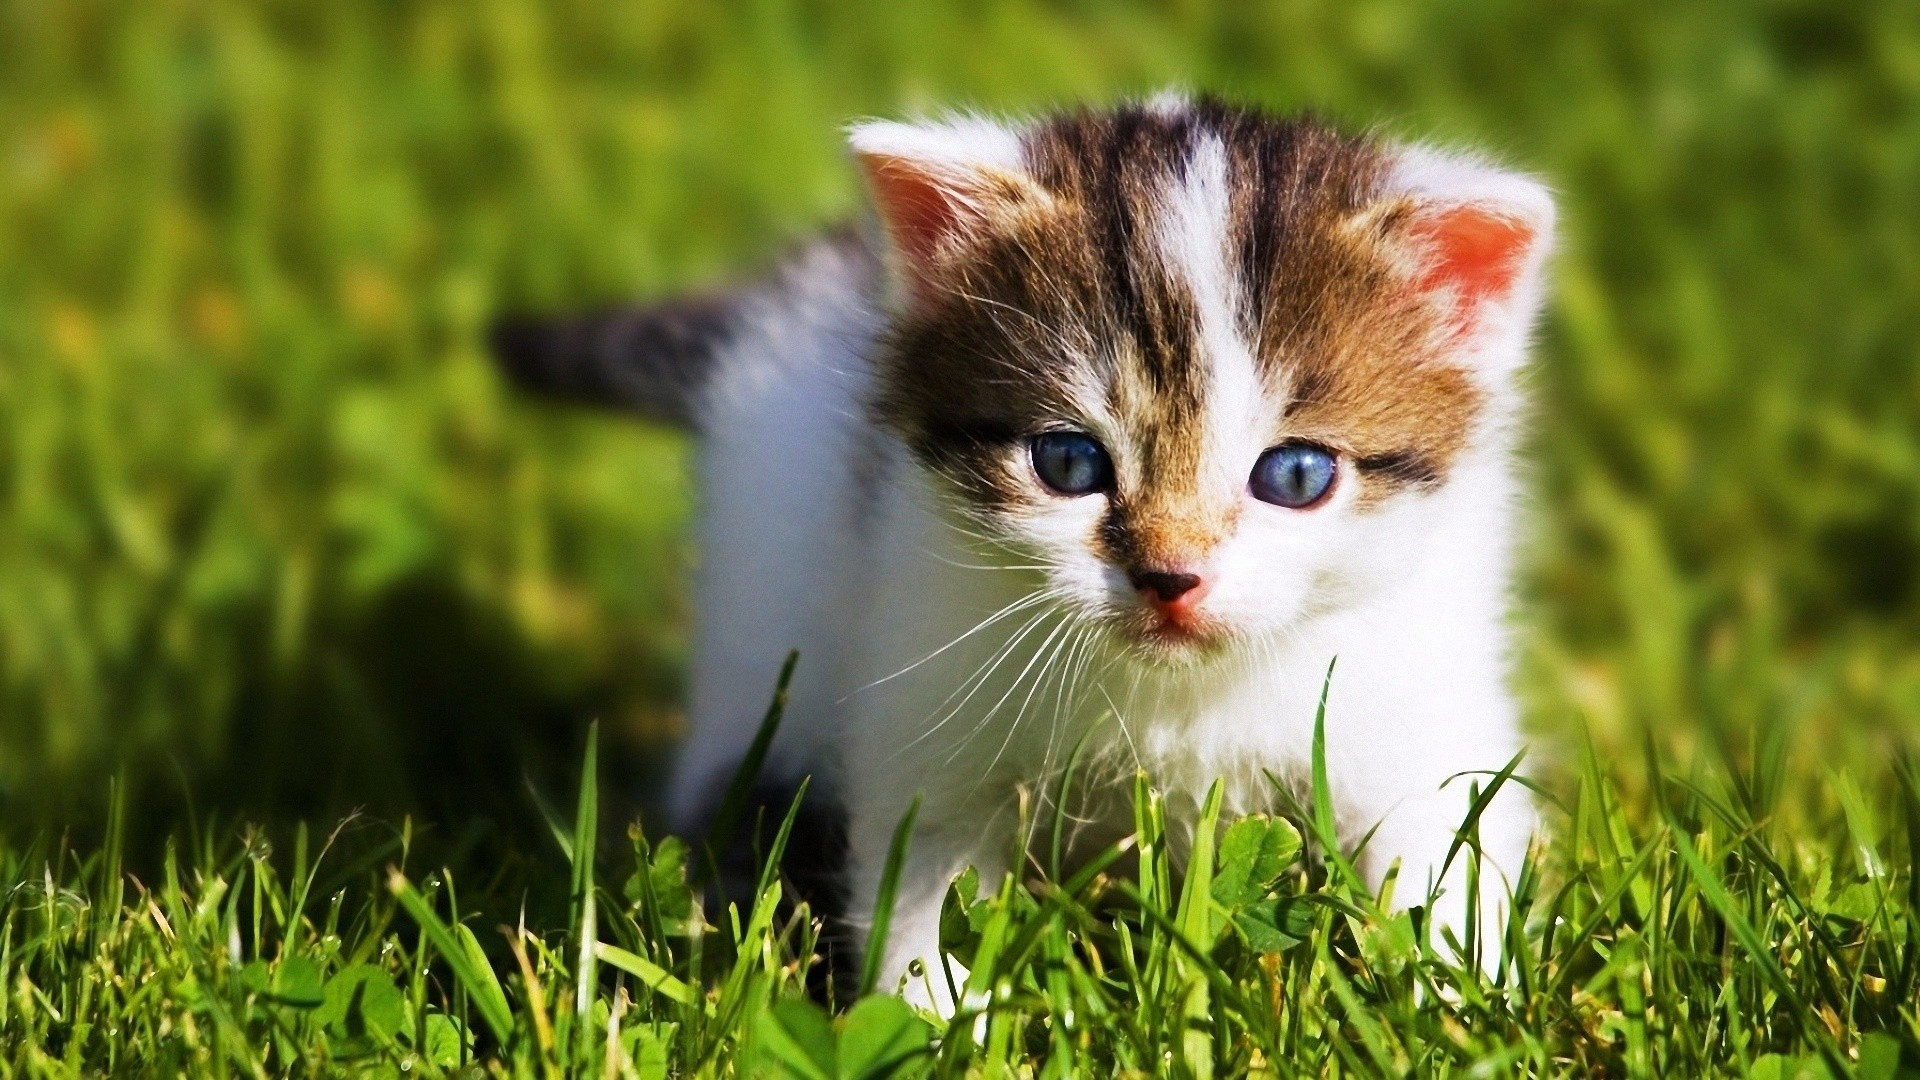 Cute Baby Cats Wallpaper Desktop Baby Animal Wallpapers Hd